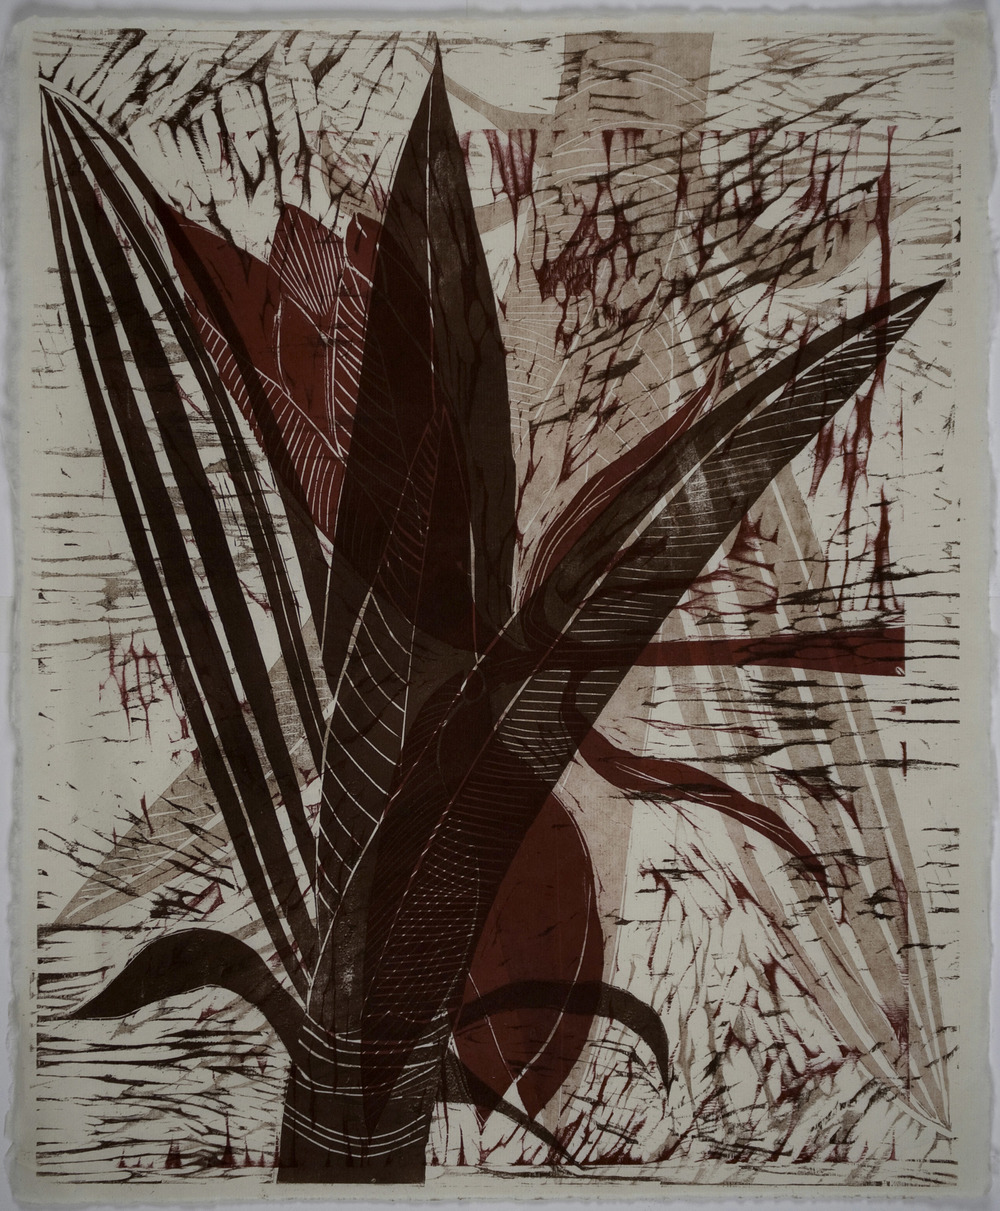 <p><strong>AMY WALTCH</strong>printmaking<a href=/amy-waltch>More →</a></p>